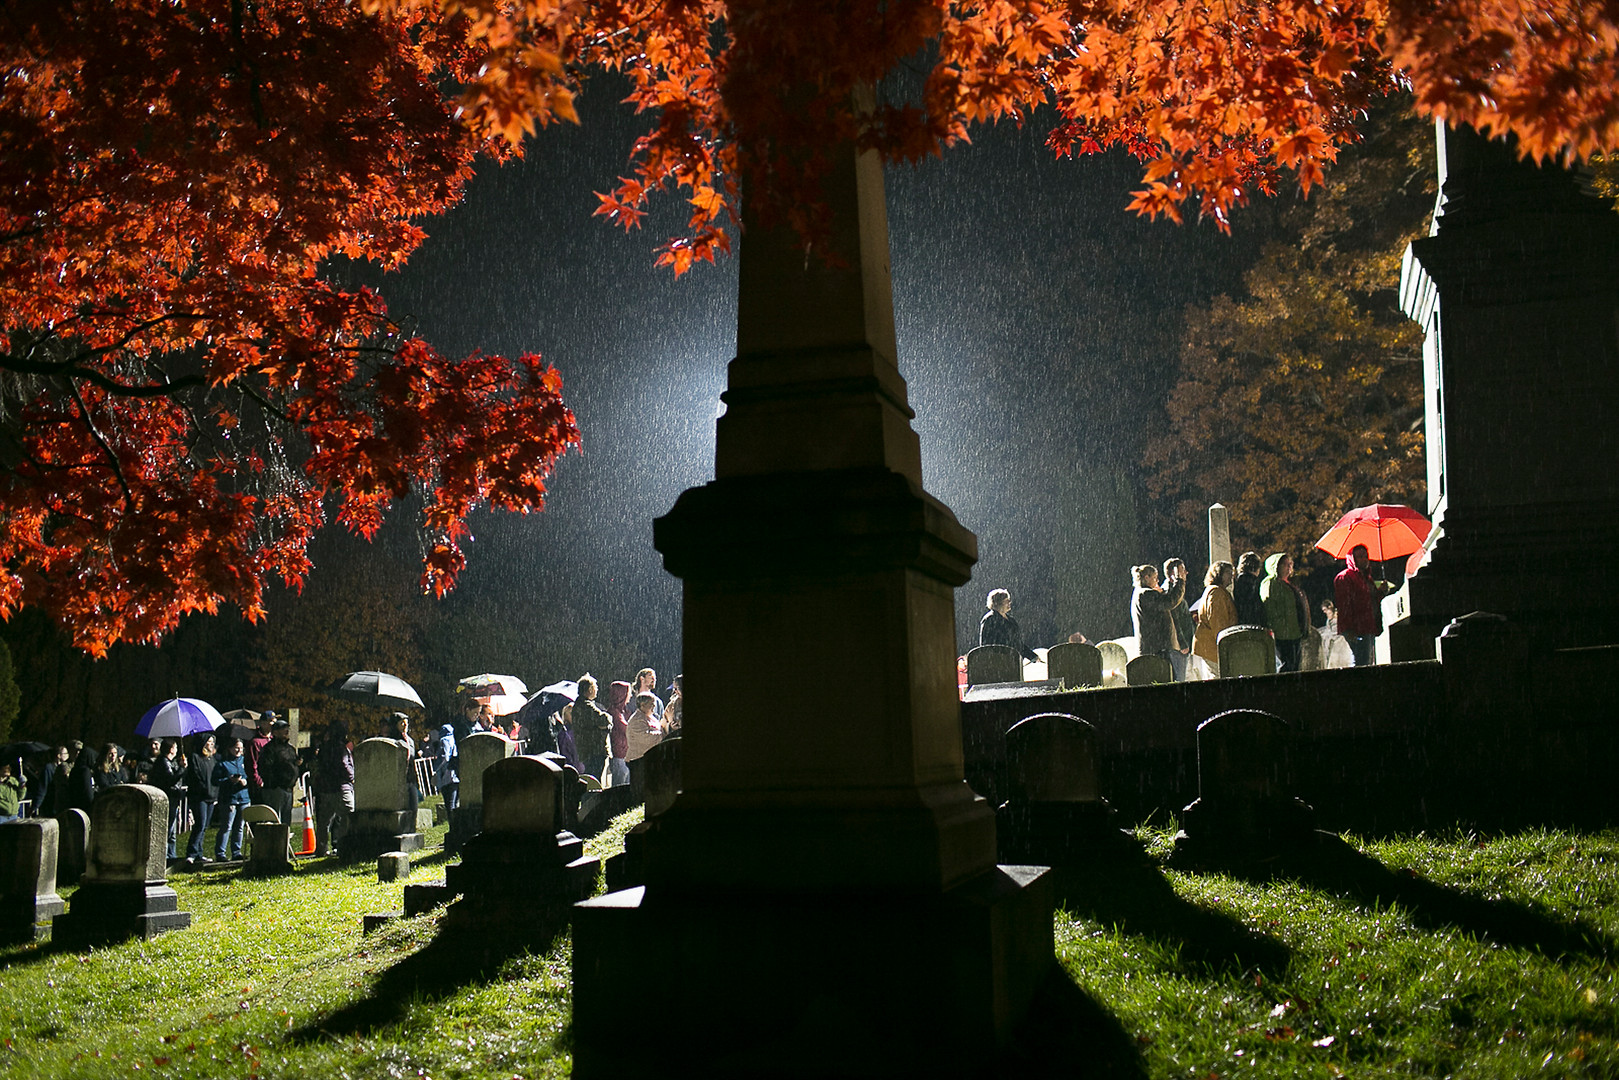 Hundreds of people waited through the rain to pay homage to suffragist Susan B. Anthony's gravsite on election day 2016